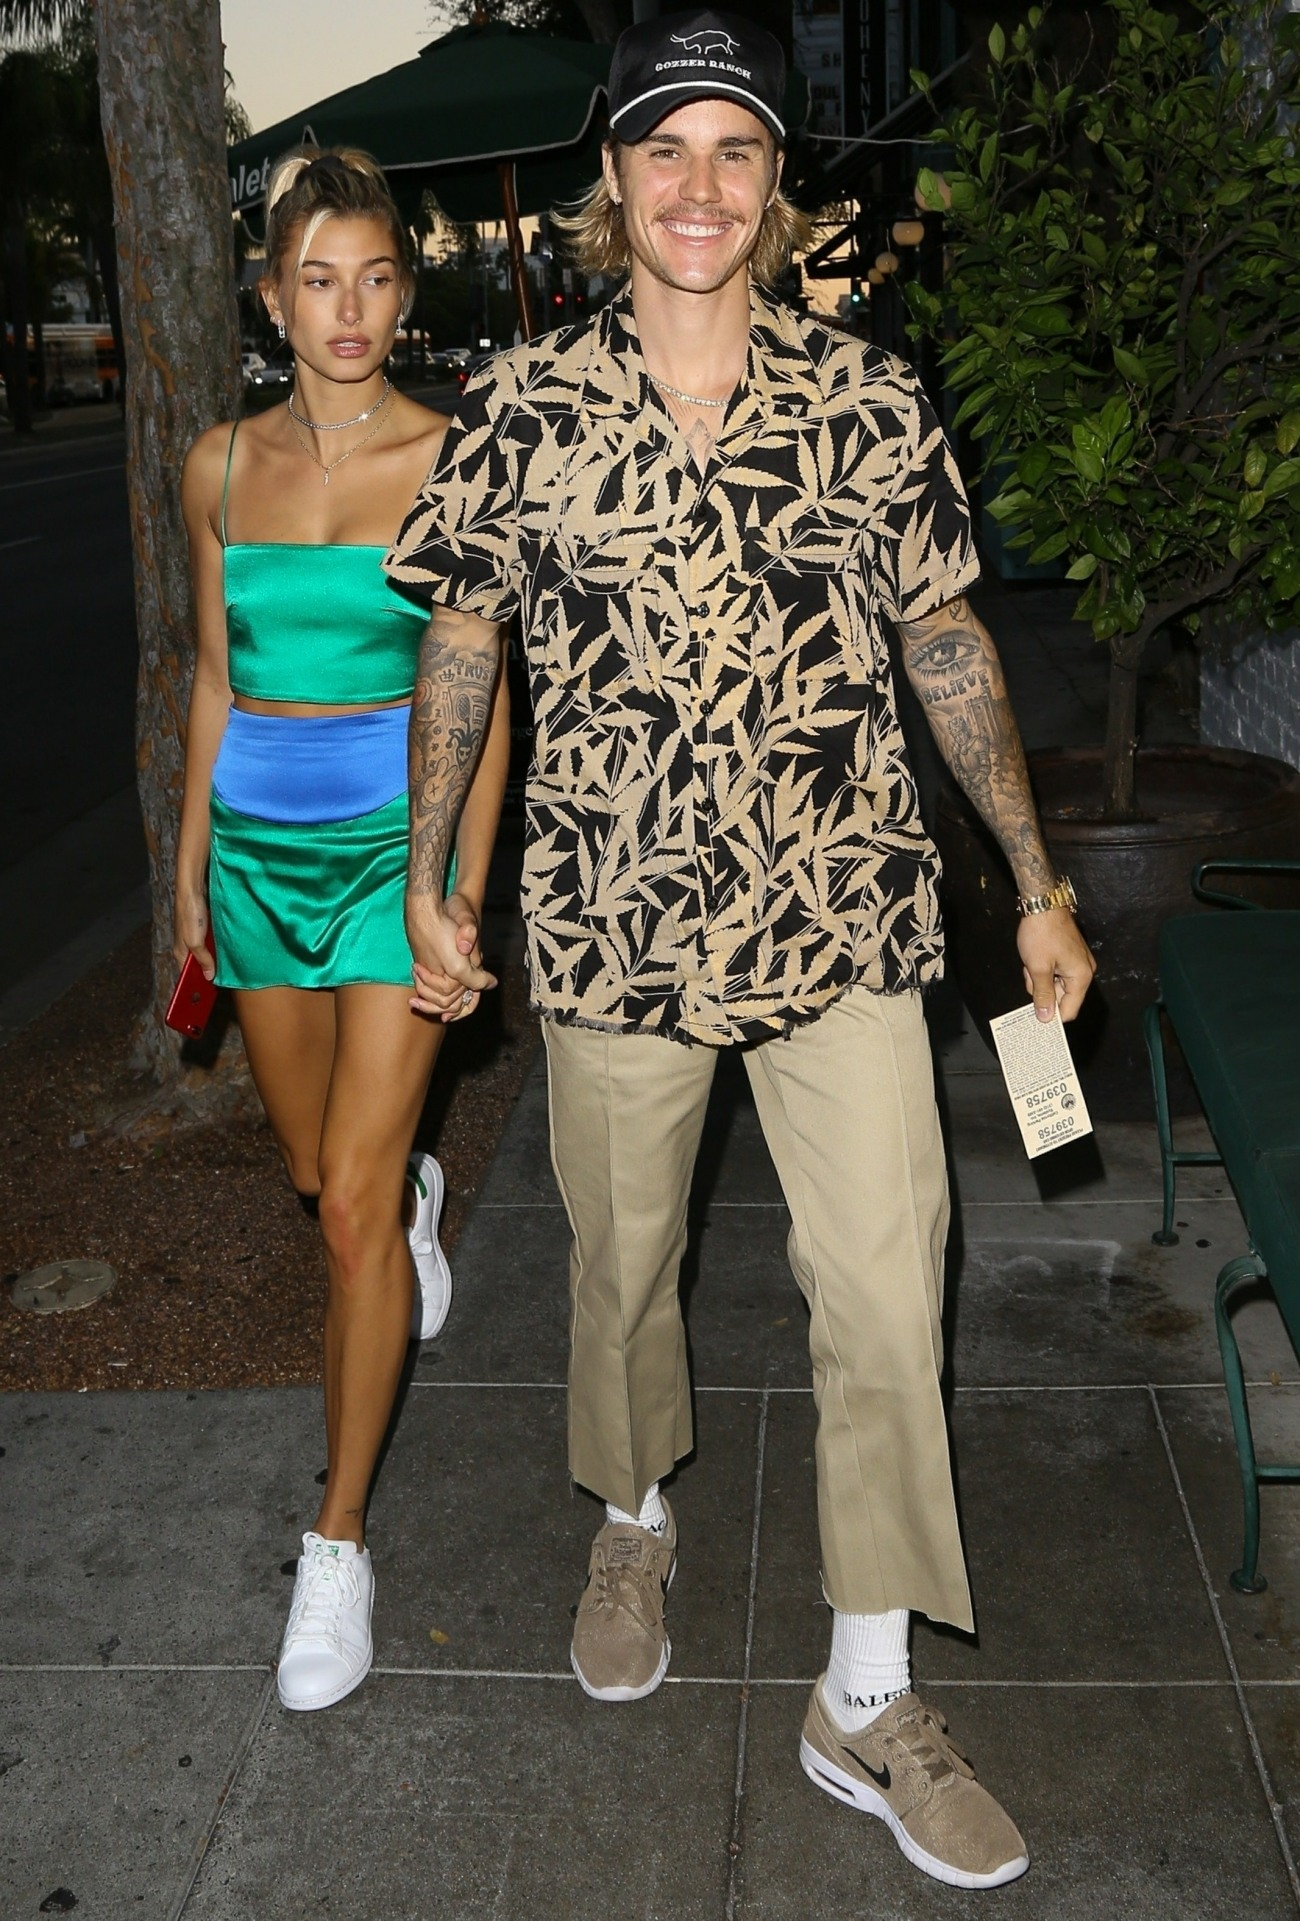 Justin Bieber and Hailey Baldwin arrive for a dinner date at Dan Tana's